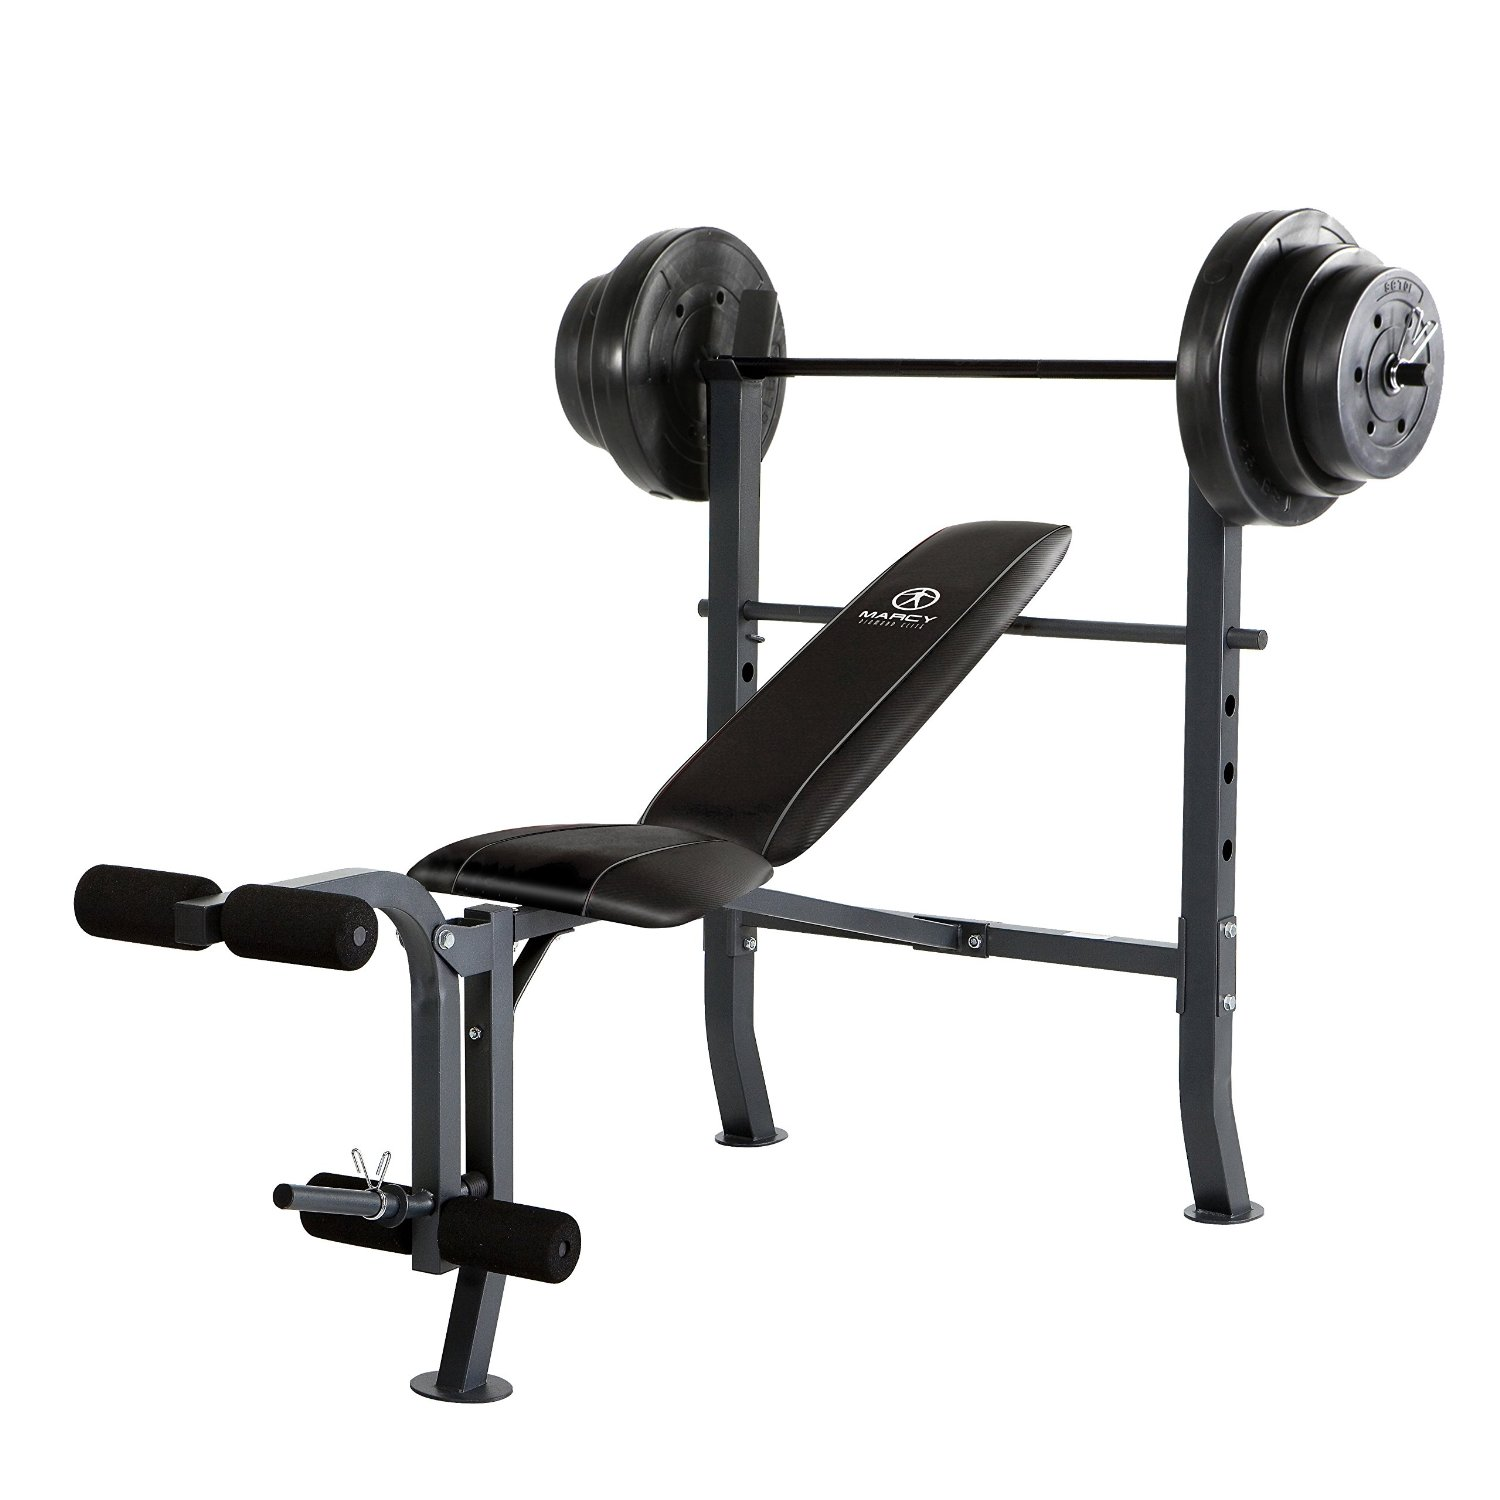 Marcy Standard Bench w/ 100 lb Weight Set Home Gym Workout Equipment   MD2082W